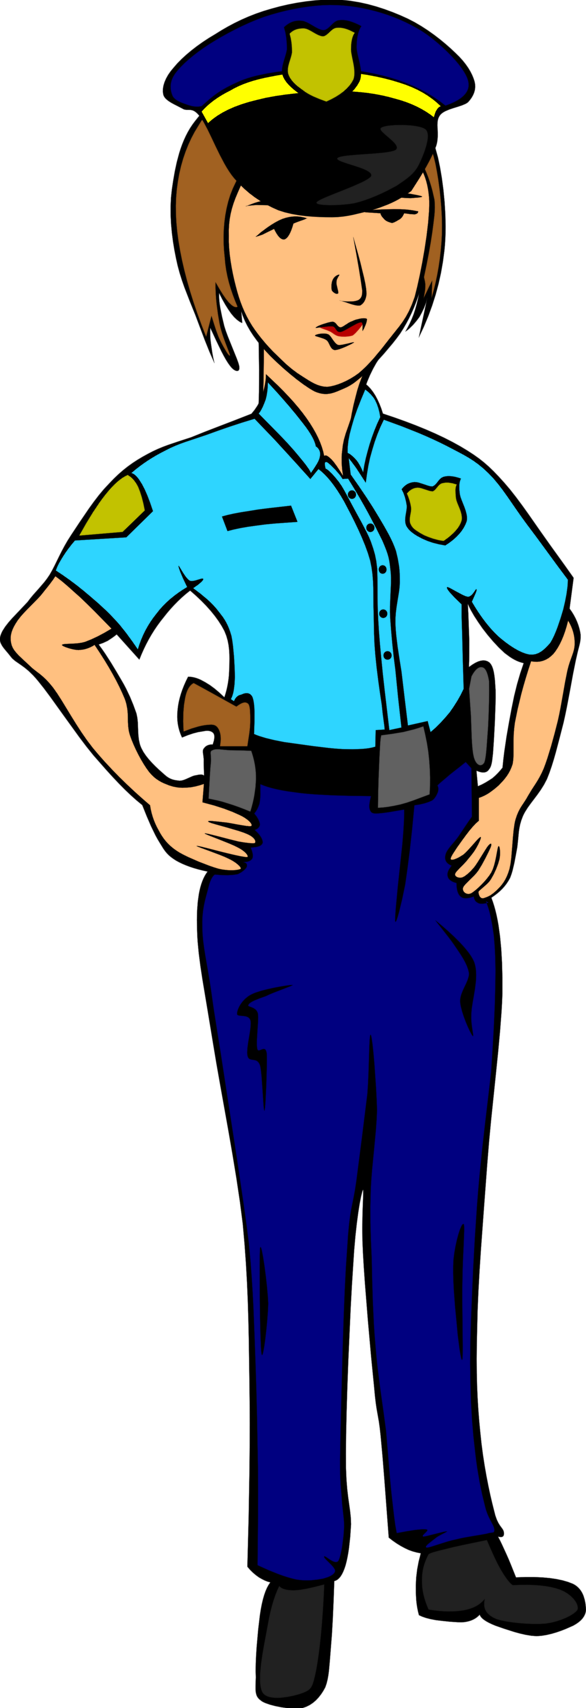 graphic royalty free library Female Police Officer Clipart